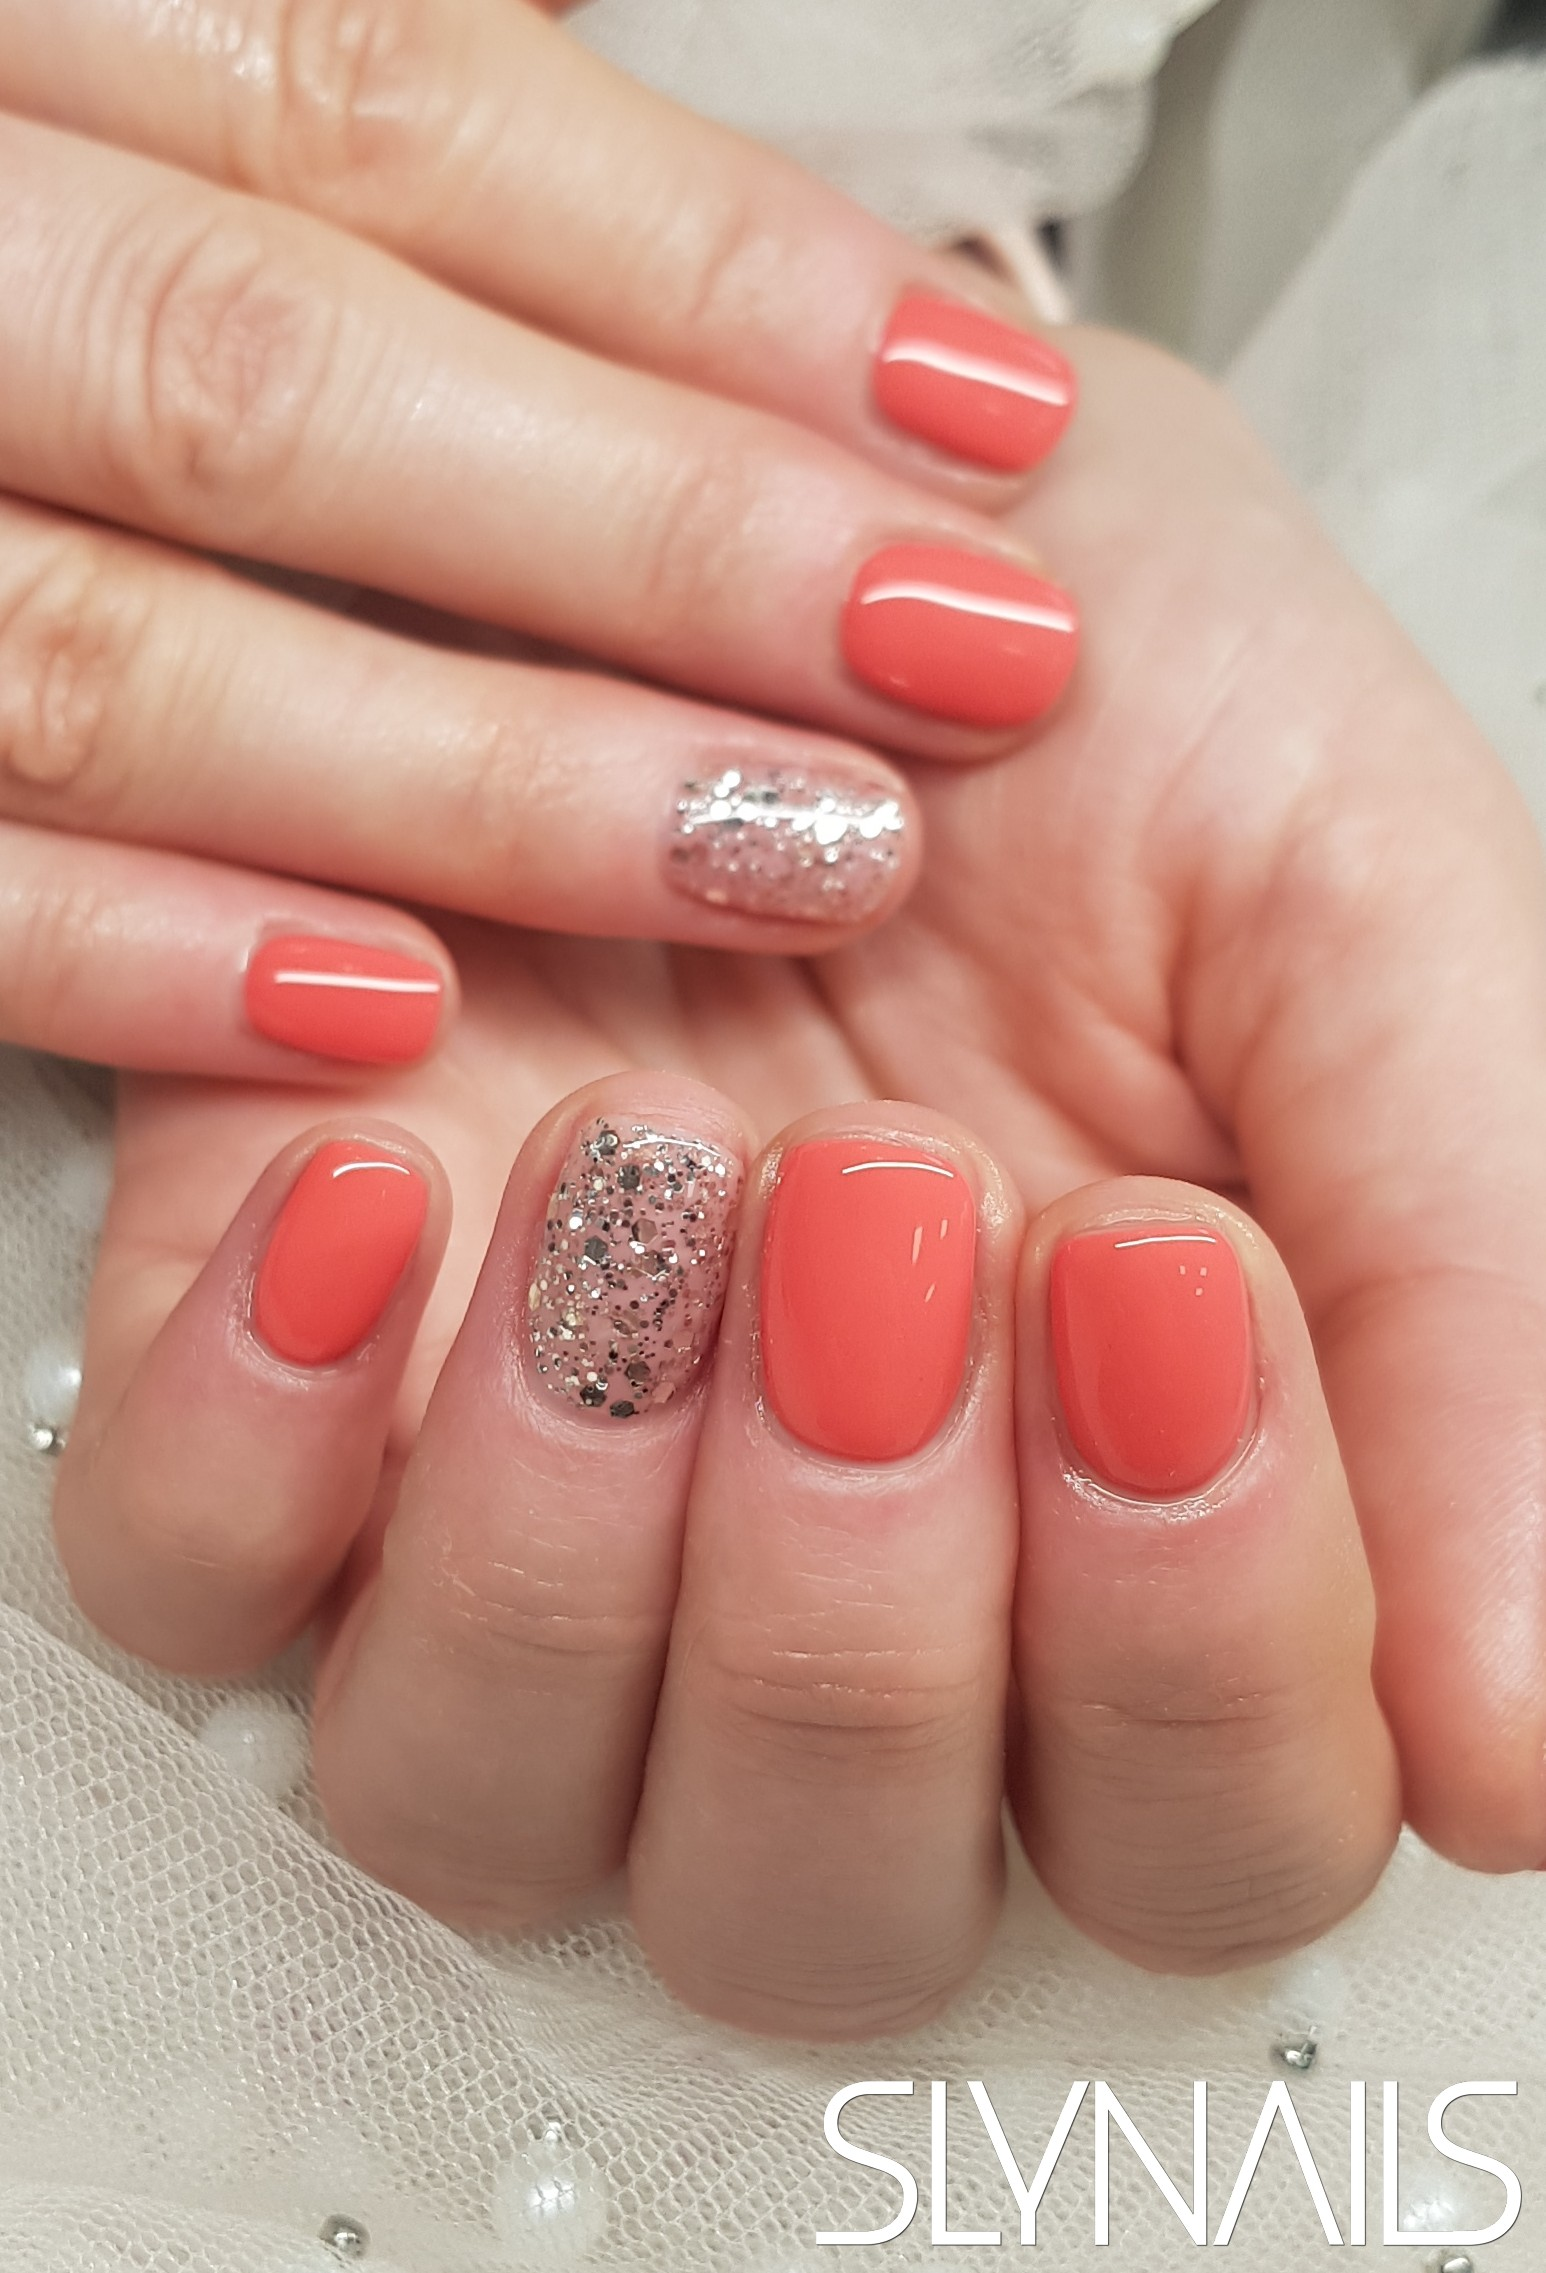 Gel-lac (gel polish), Coral, One color, Square, Bronze